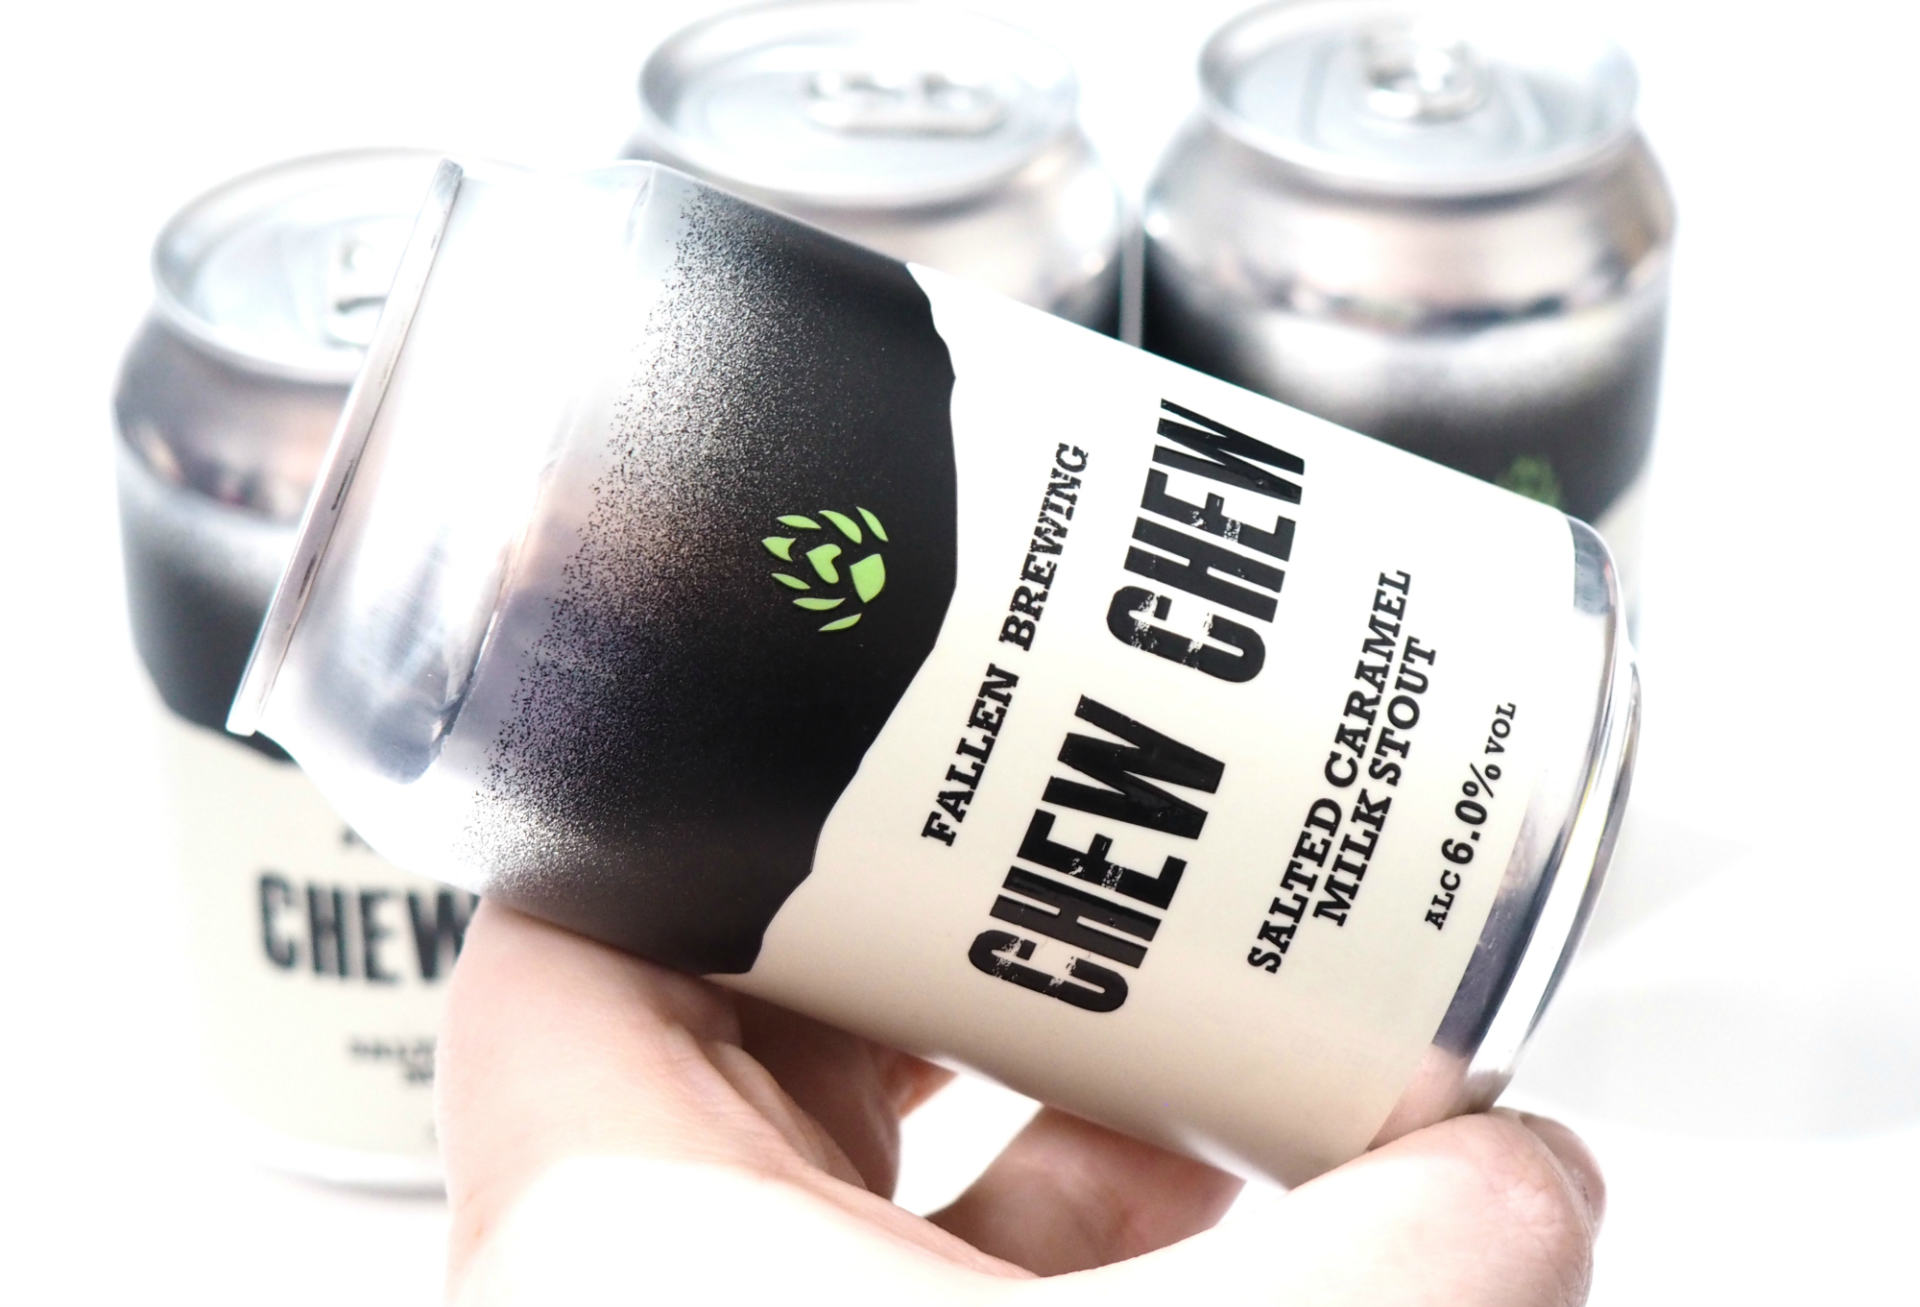 Fallen Brewing's Chew Chew